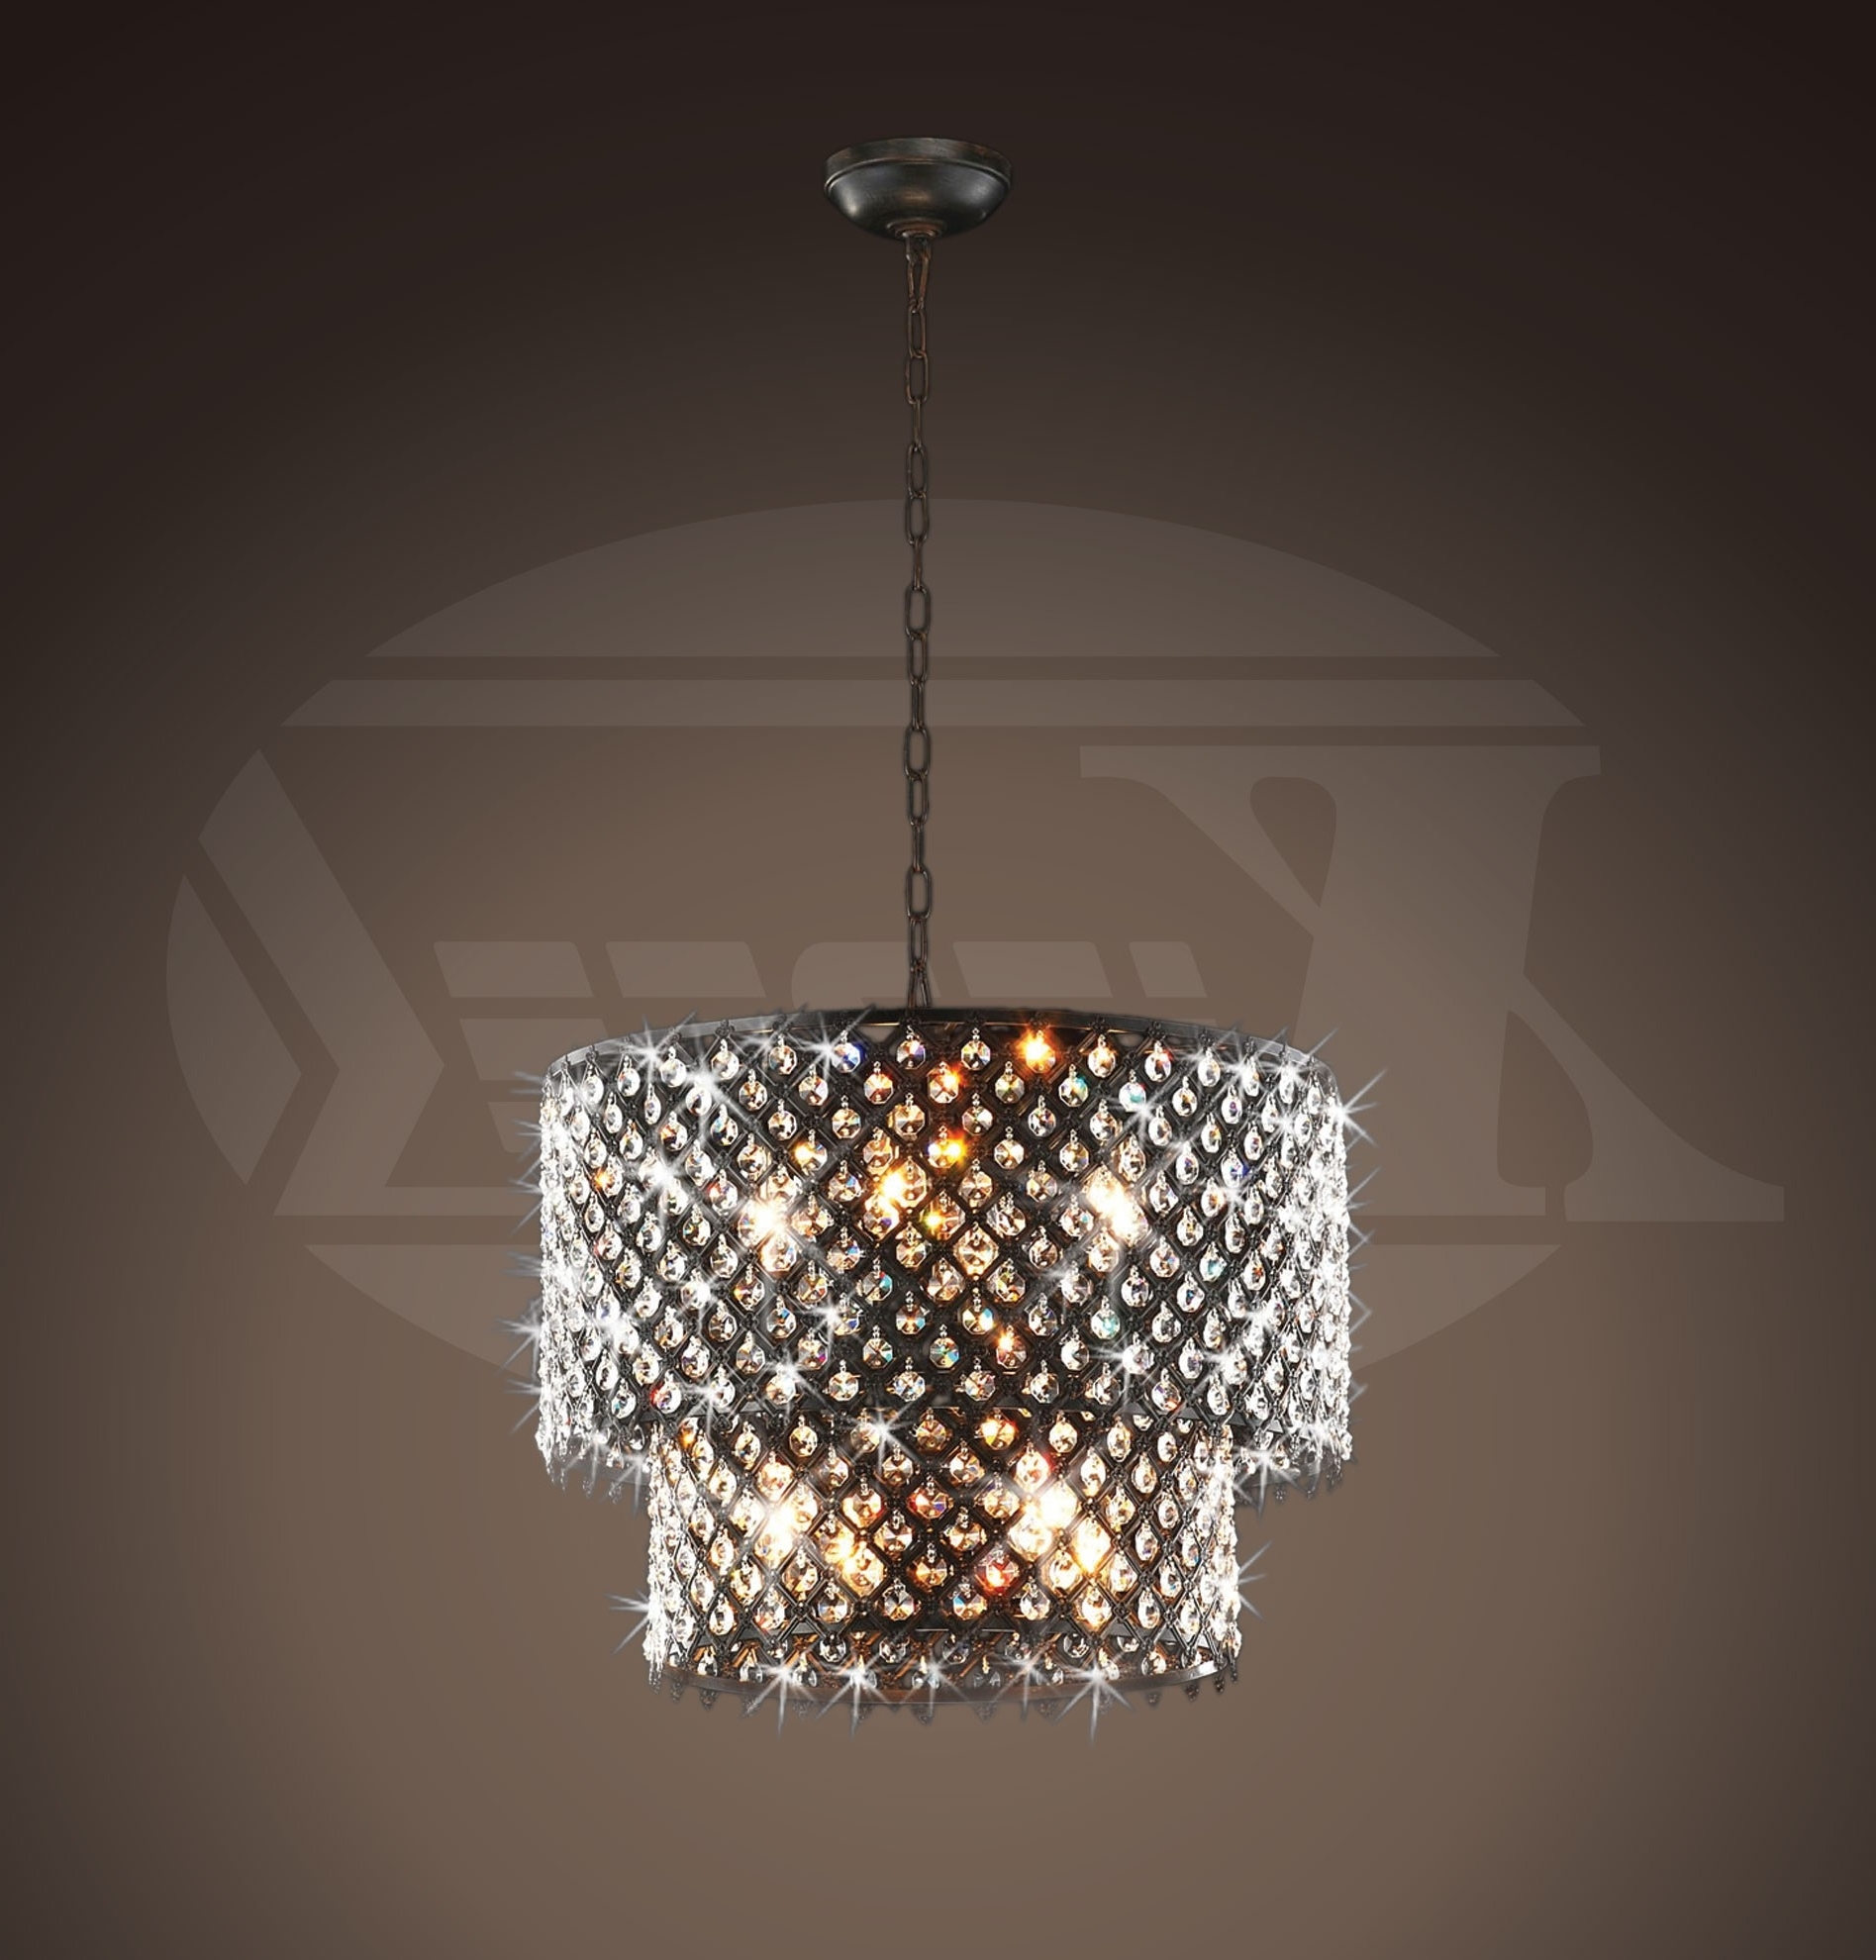 Bronze And Crystal Chandeliers Regarding Latest Bella Jean Antique Bronze 8 Light Double Round Crystal Chandelier (View 3 of 20)